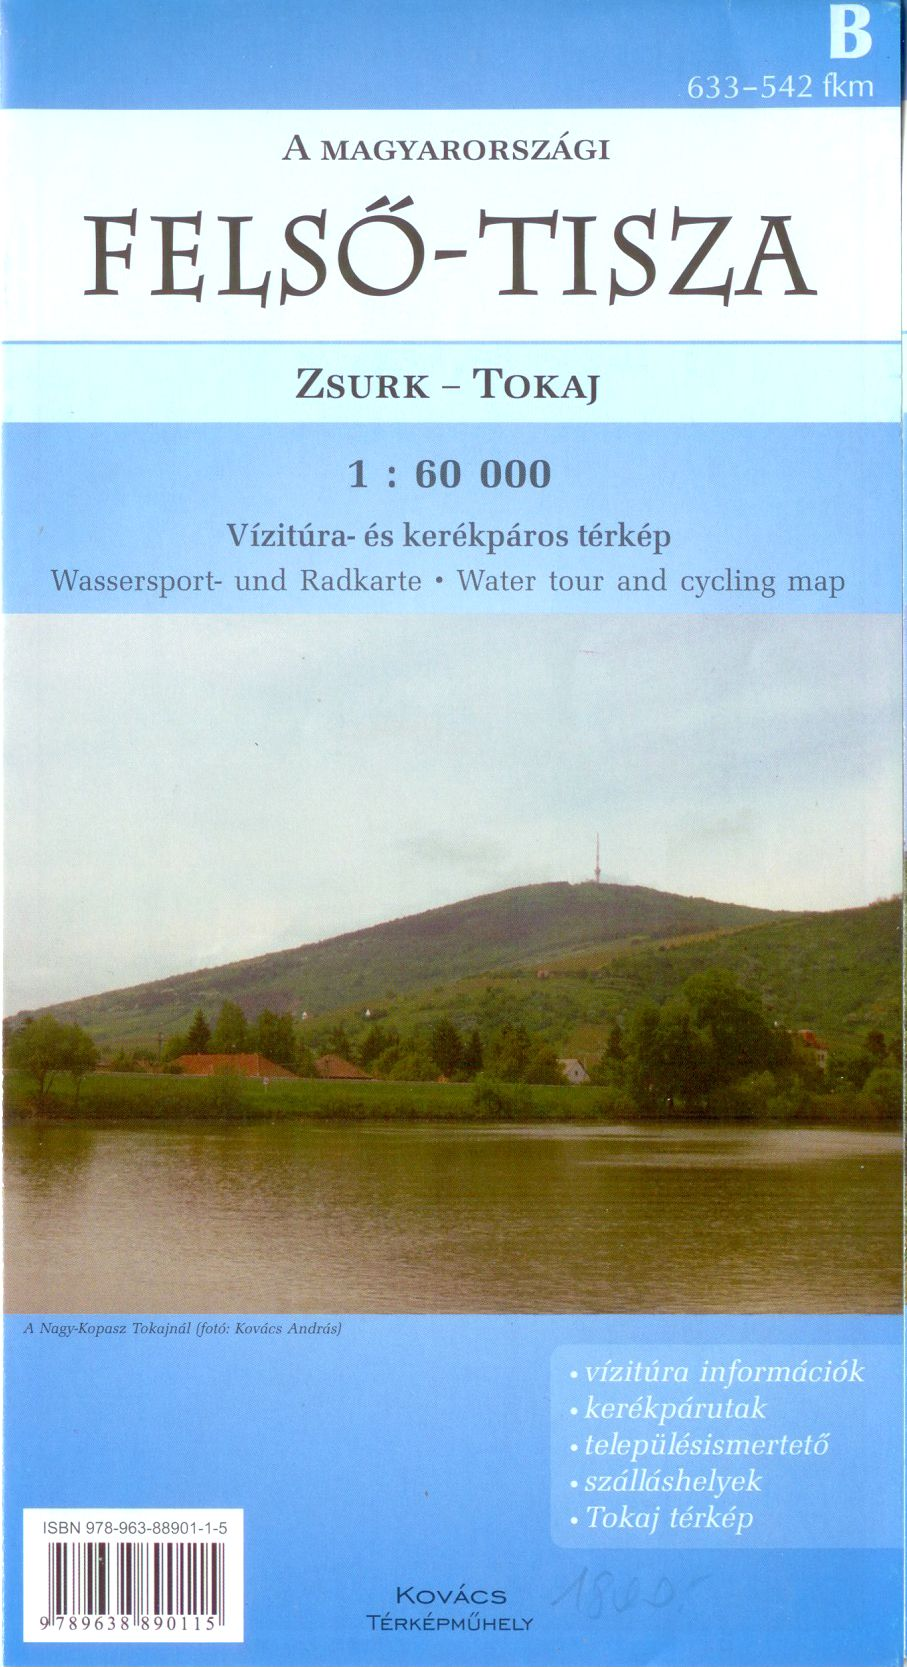 Canoing-angling map of the Tisza river from Zsurk till Tokaj (633-542 km)